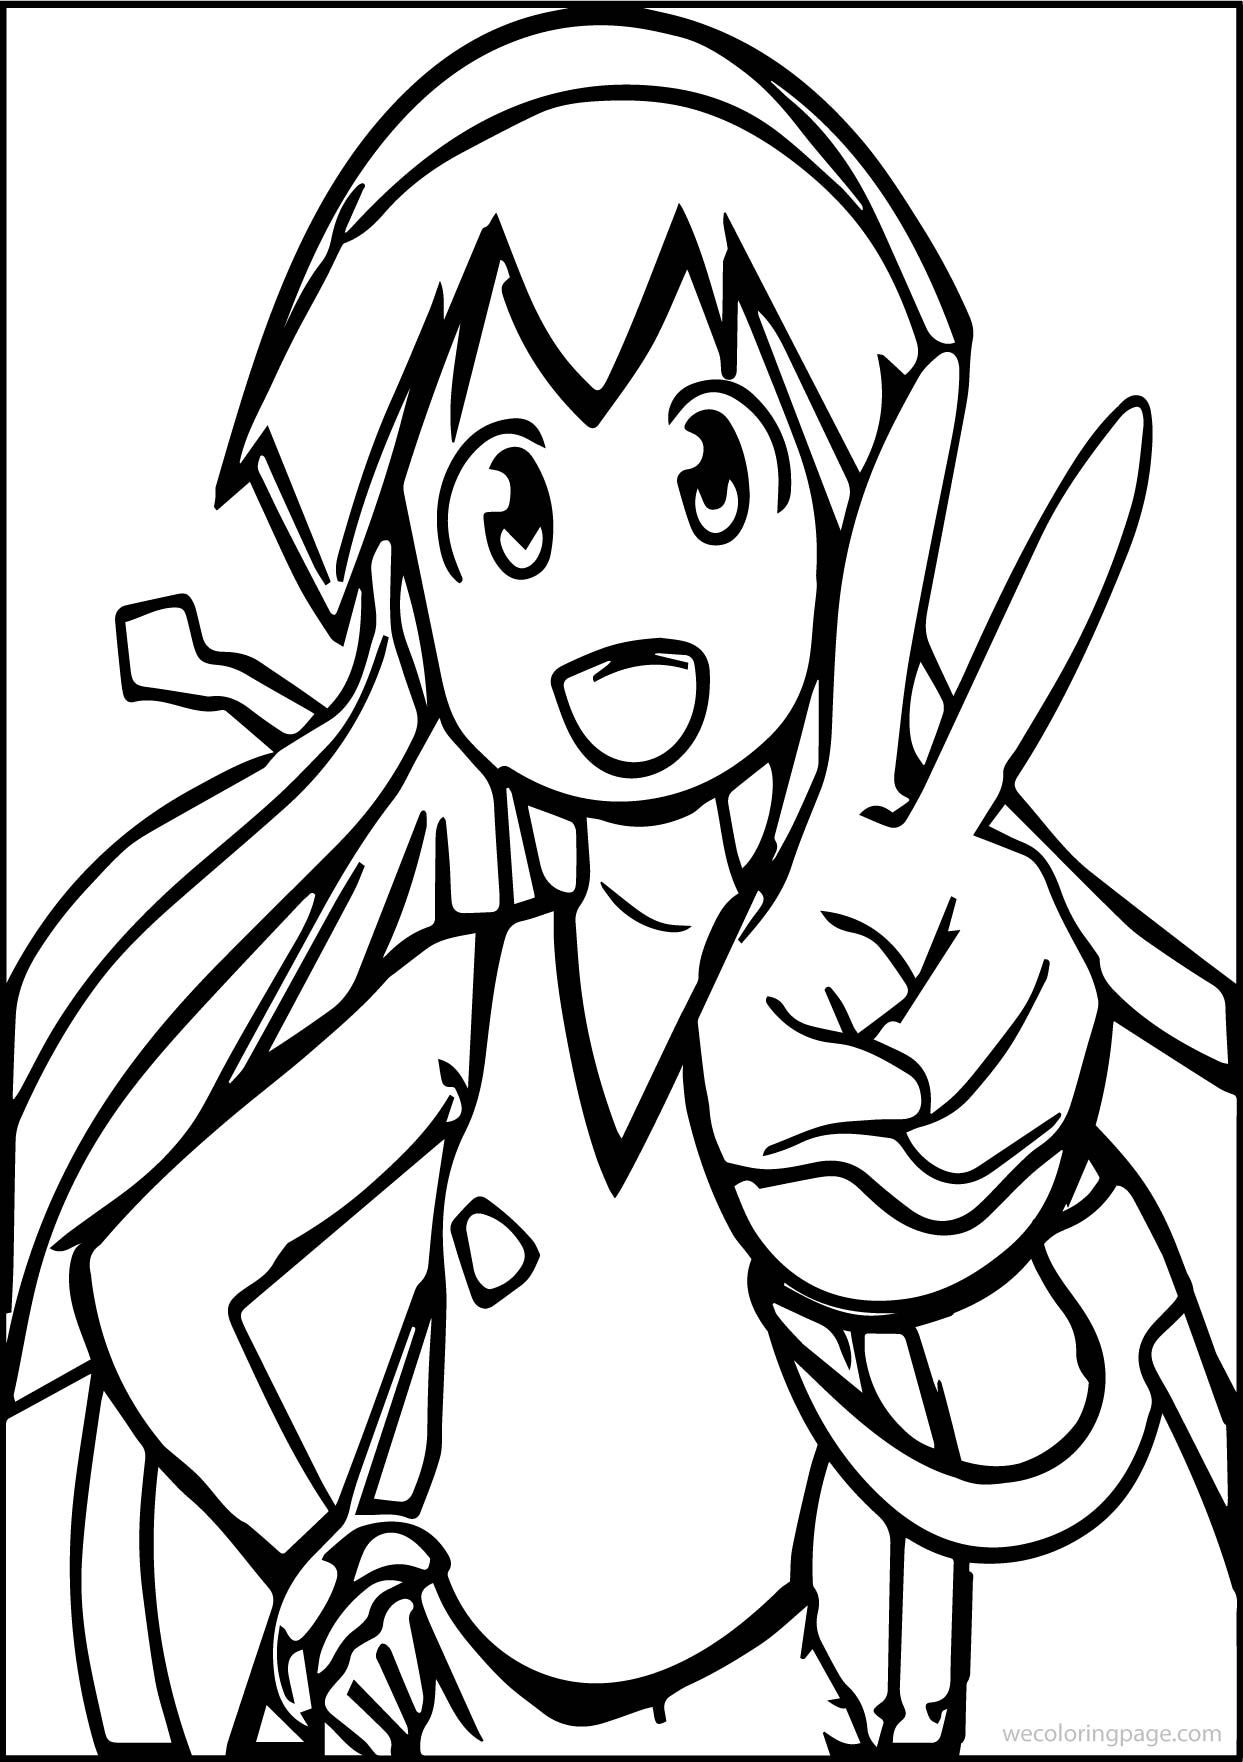 Awesome Squid Girl Yes Coloring Page Pirate Coloring Pages Coloring Pages For Girls Coloring Pages